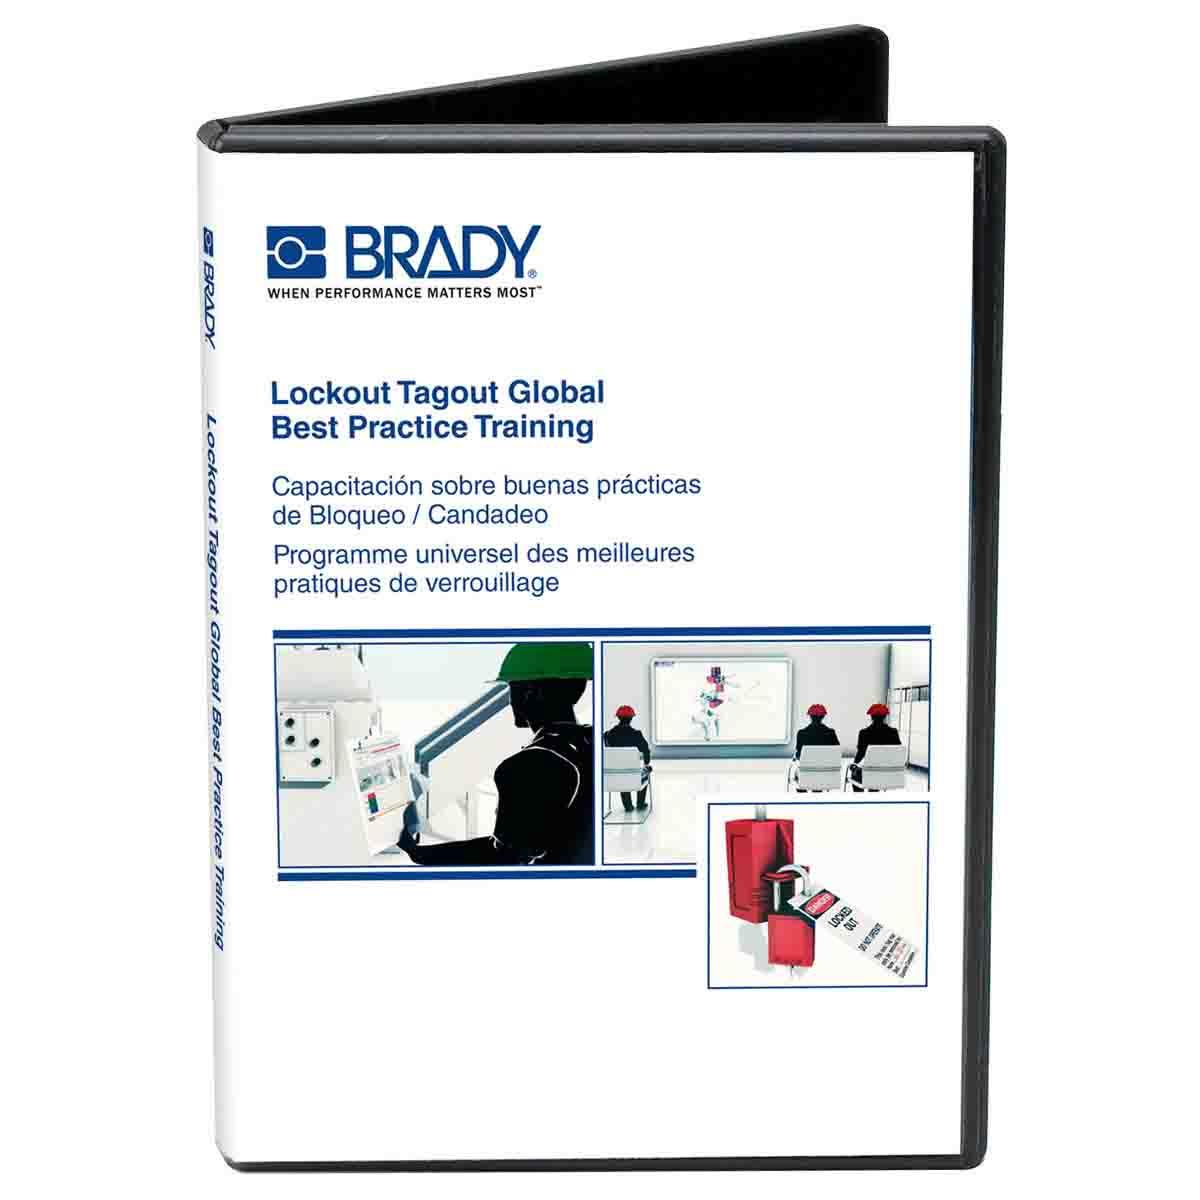 Brady Lockout Tagout Template